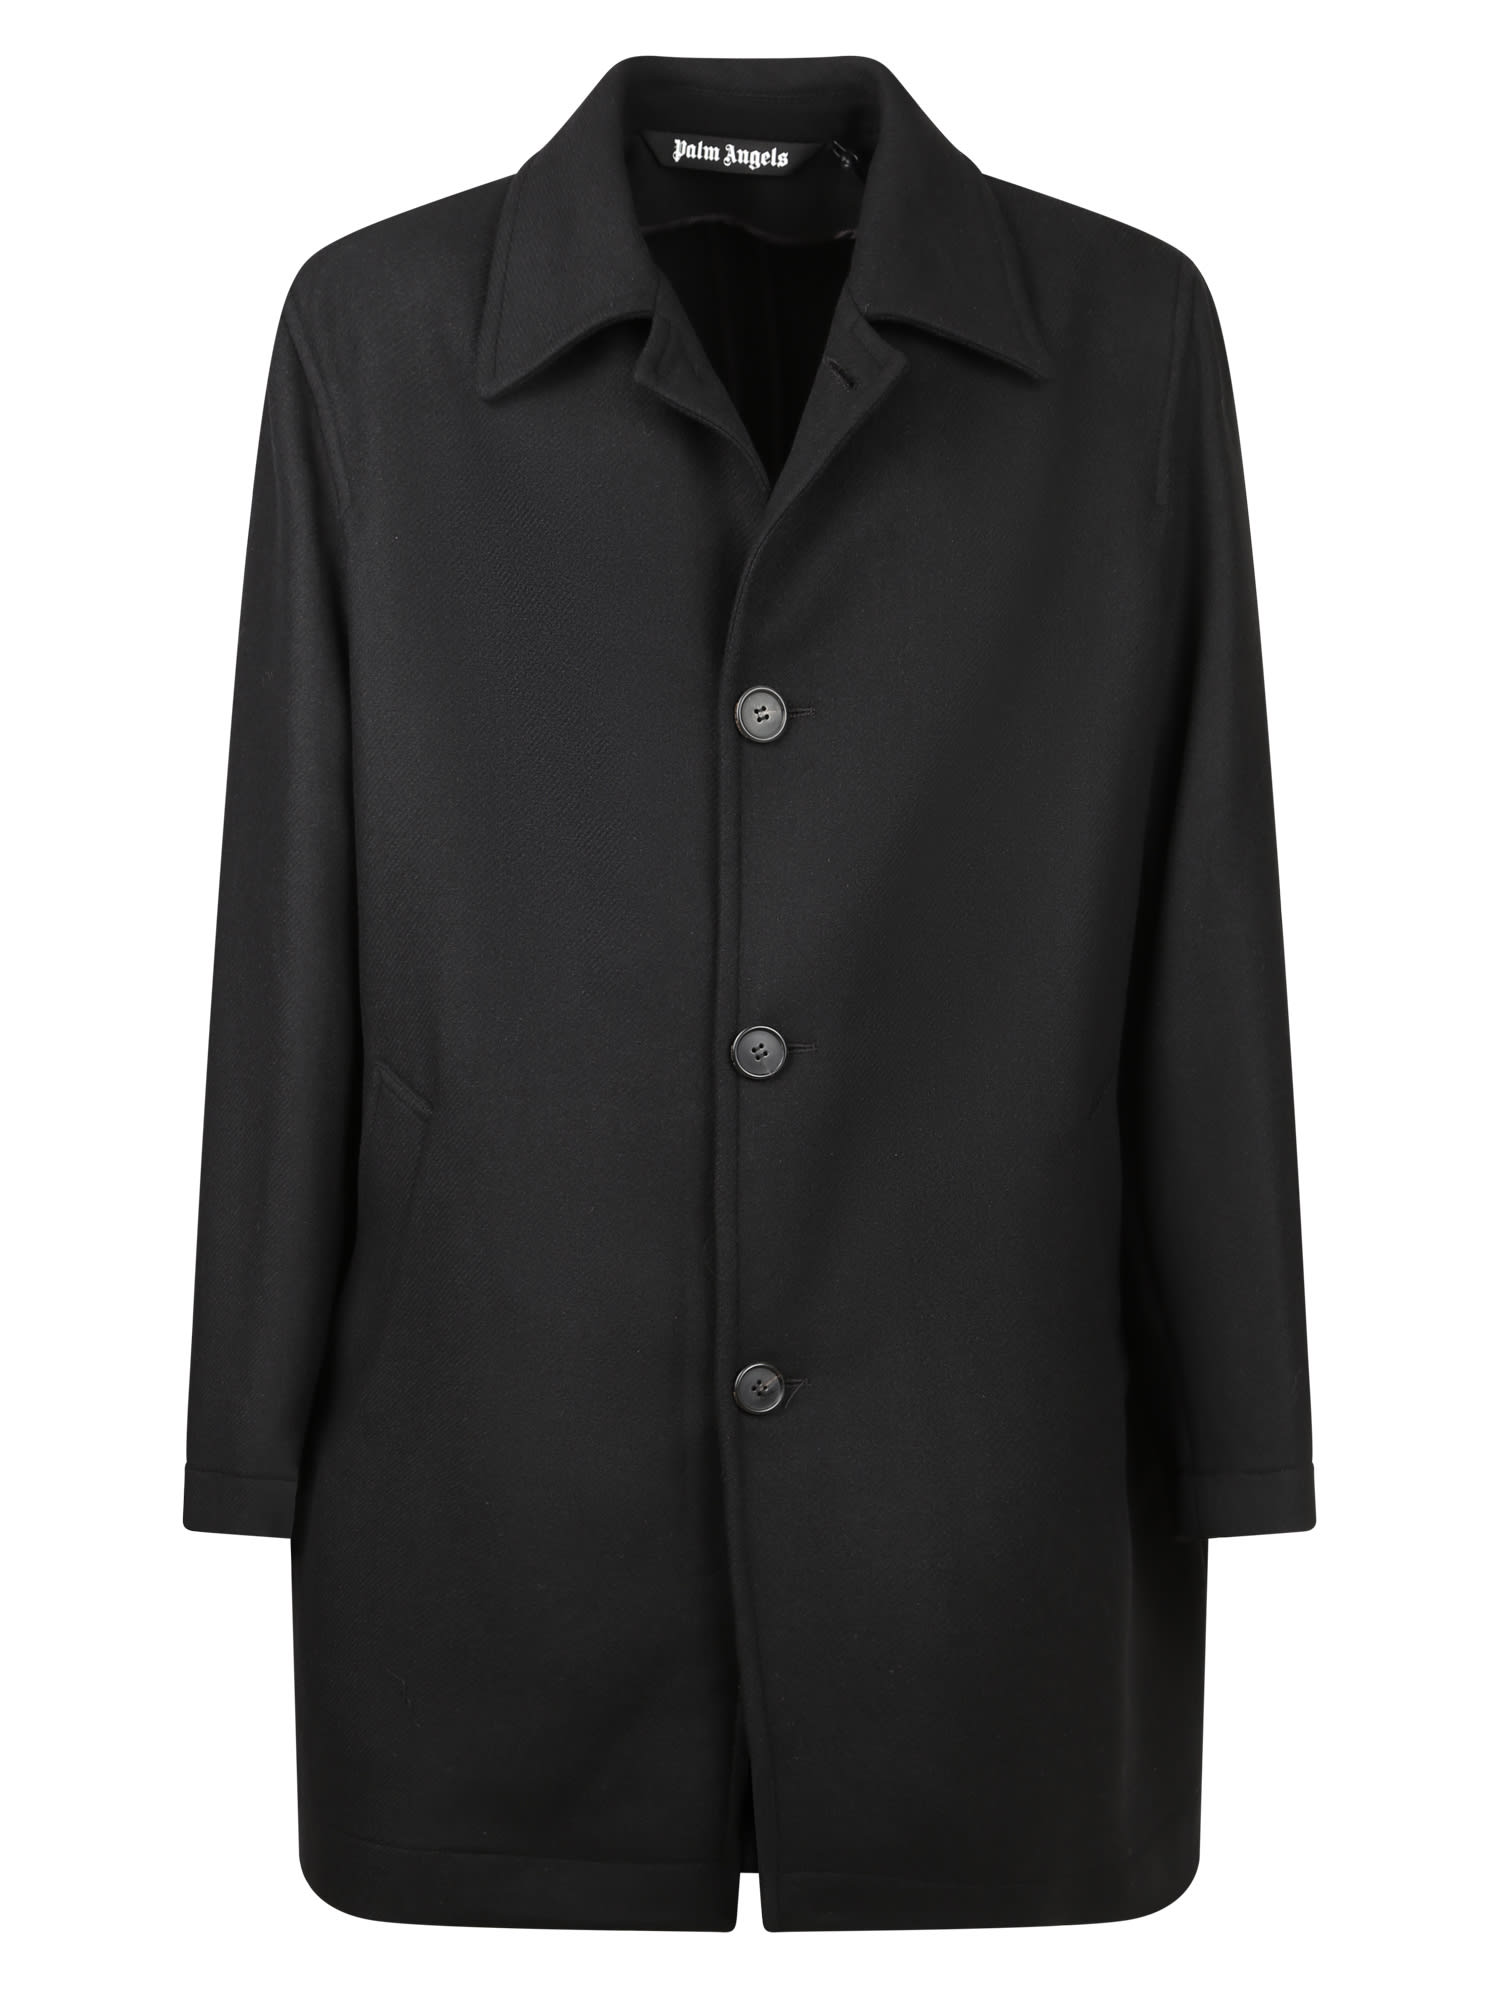 Palm Angels Single-breasted Coat